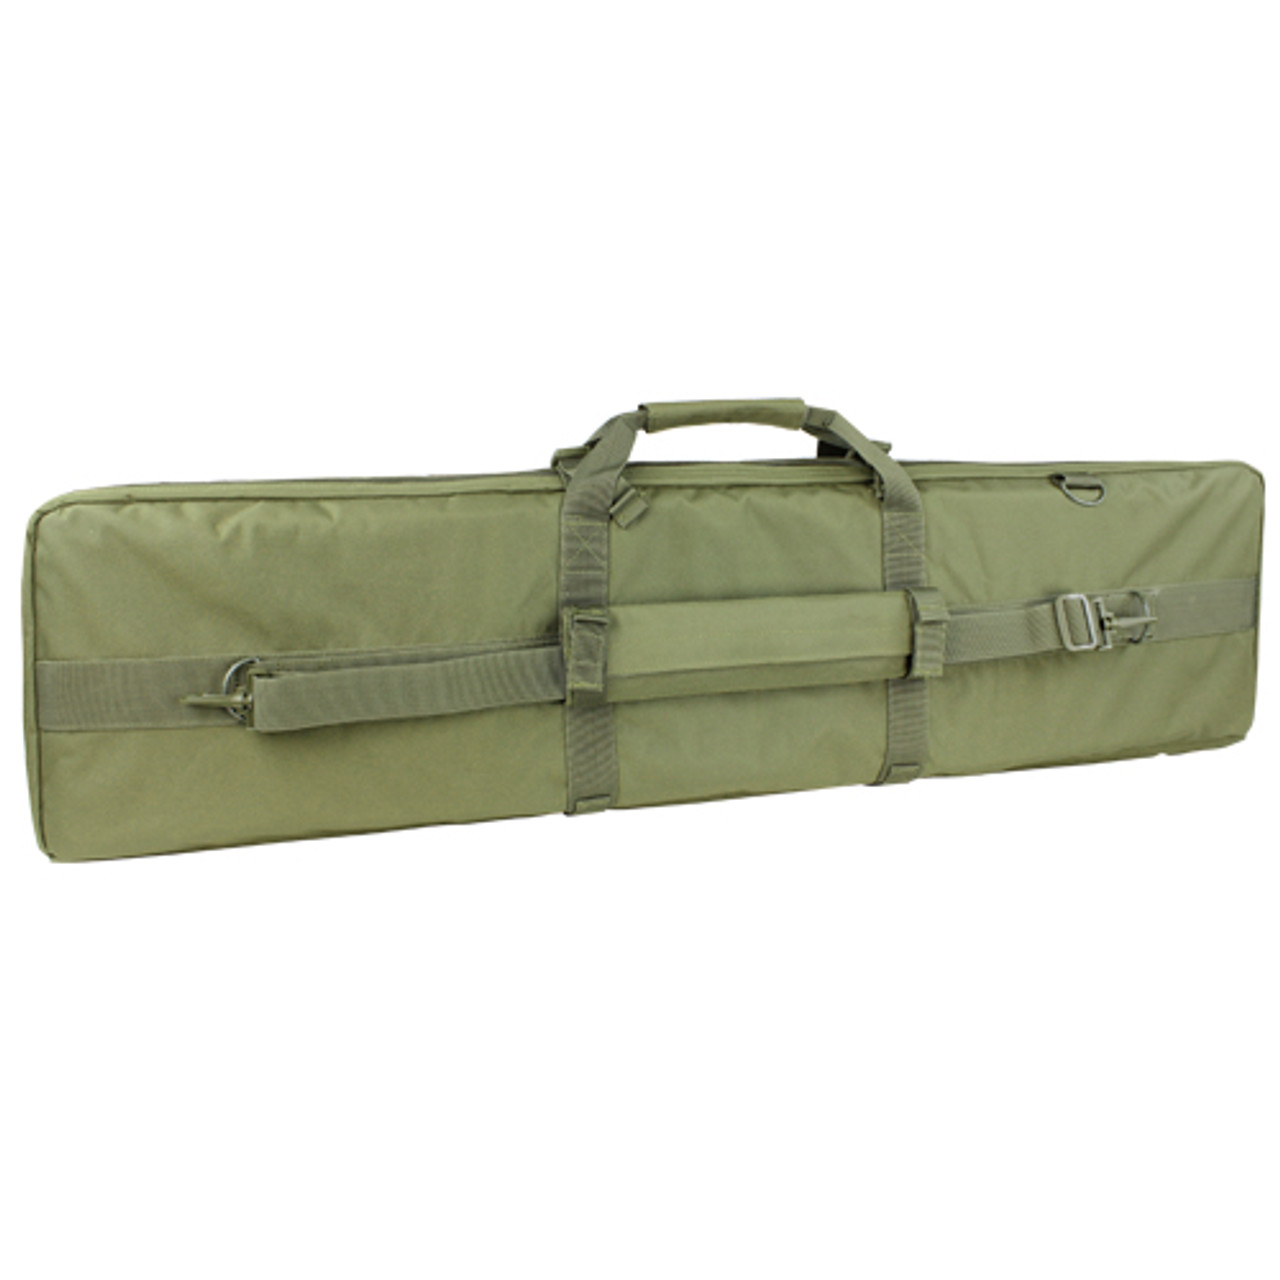 Condor - 42 Inch Rifle Case (Olive Drab) Back Strap Stowed